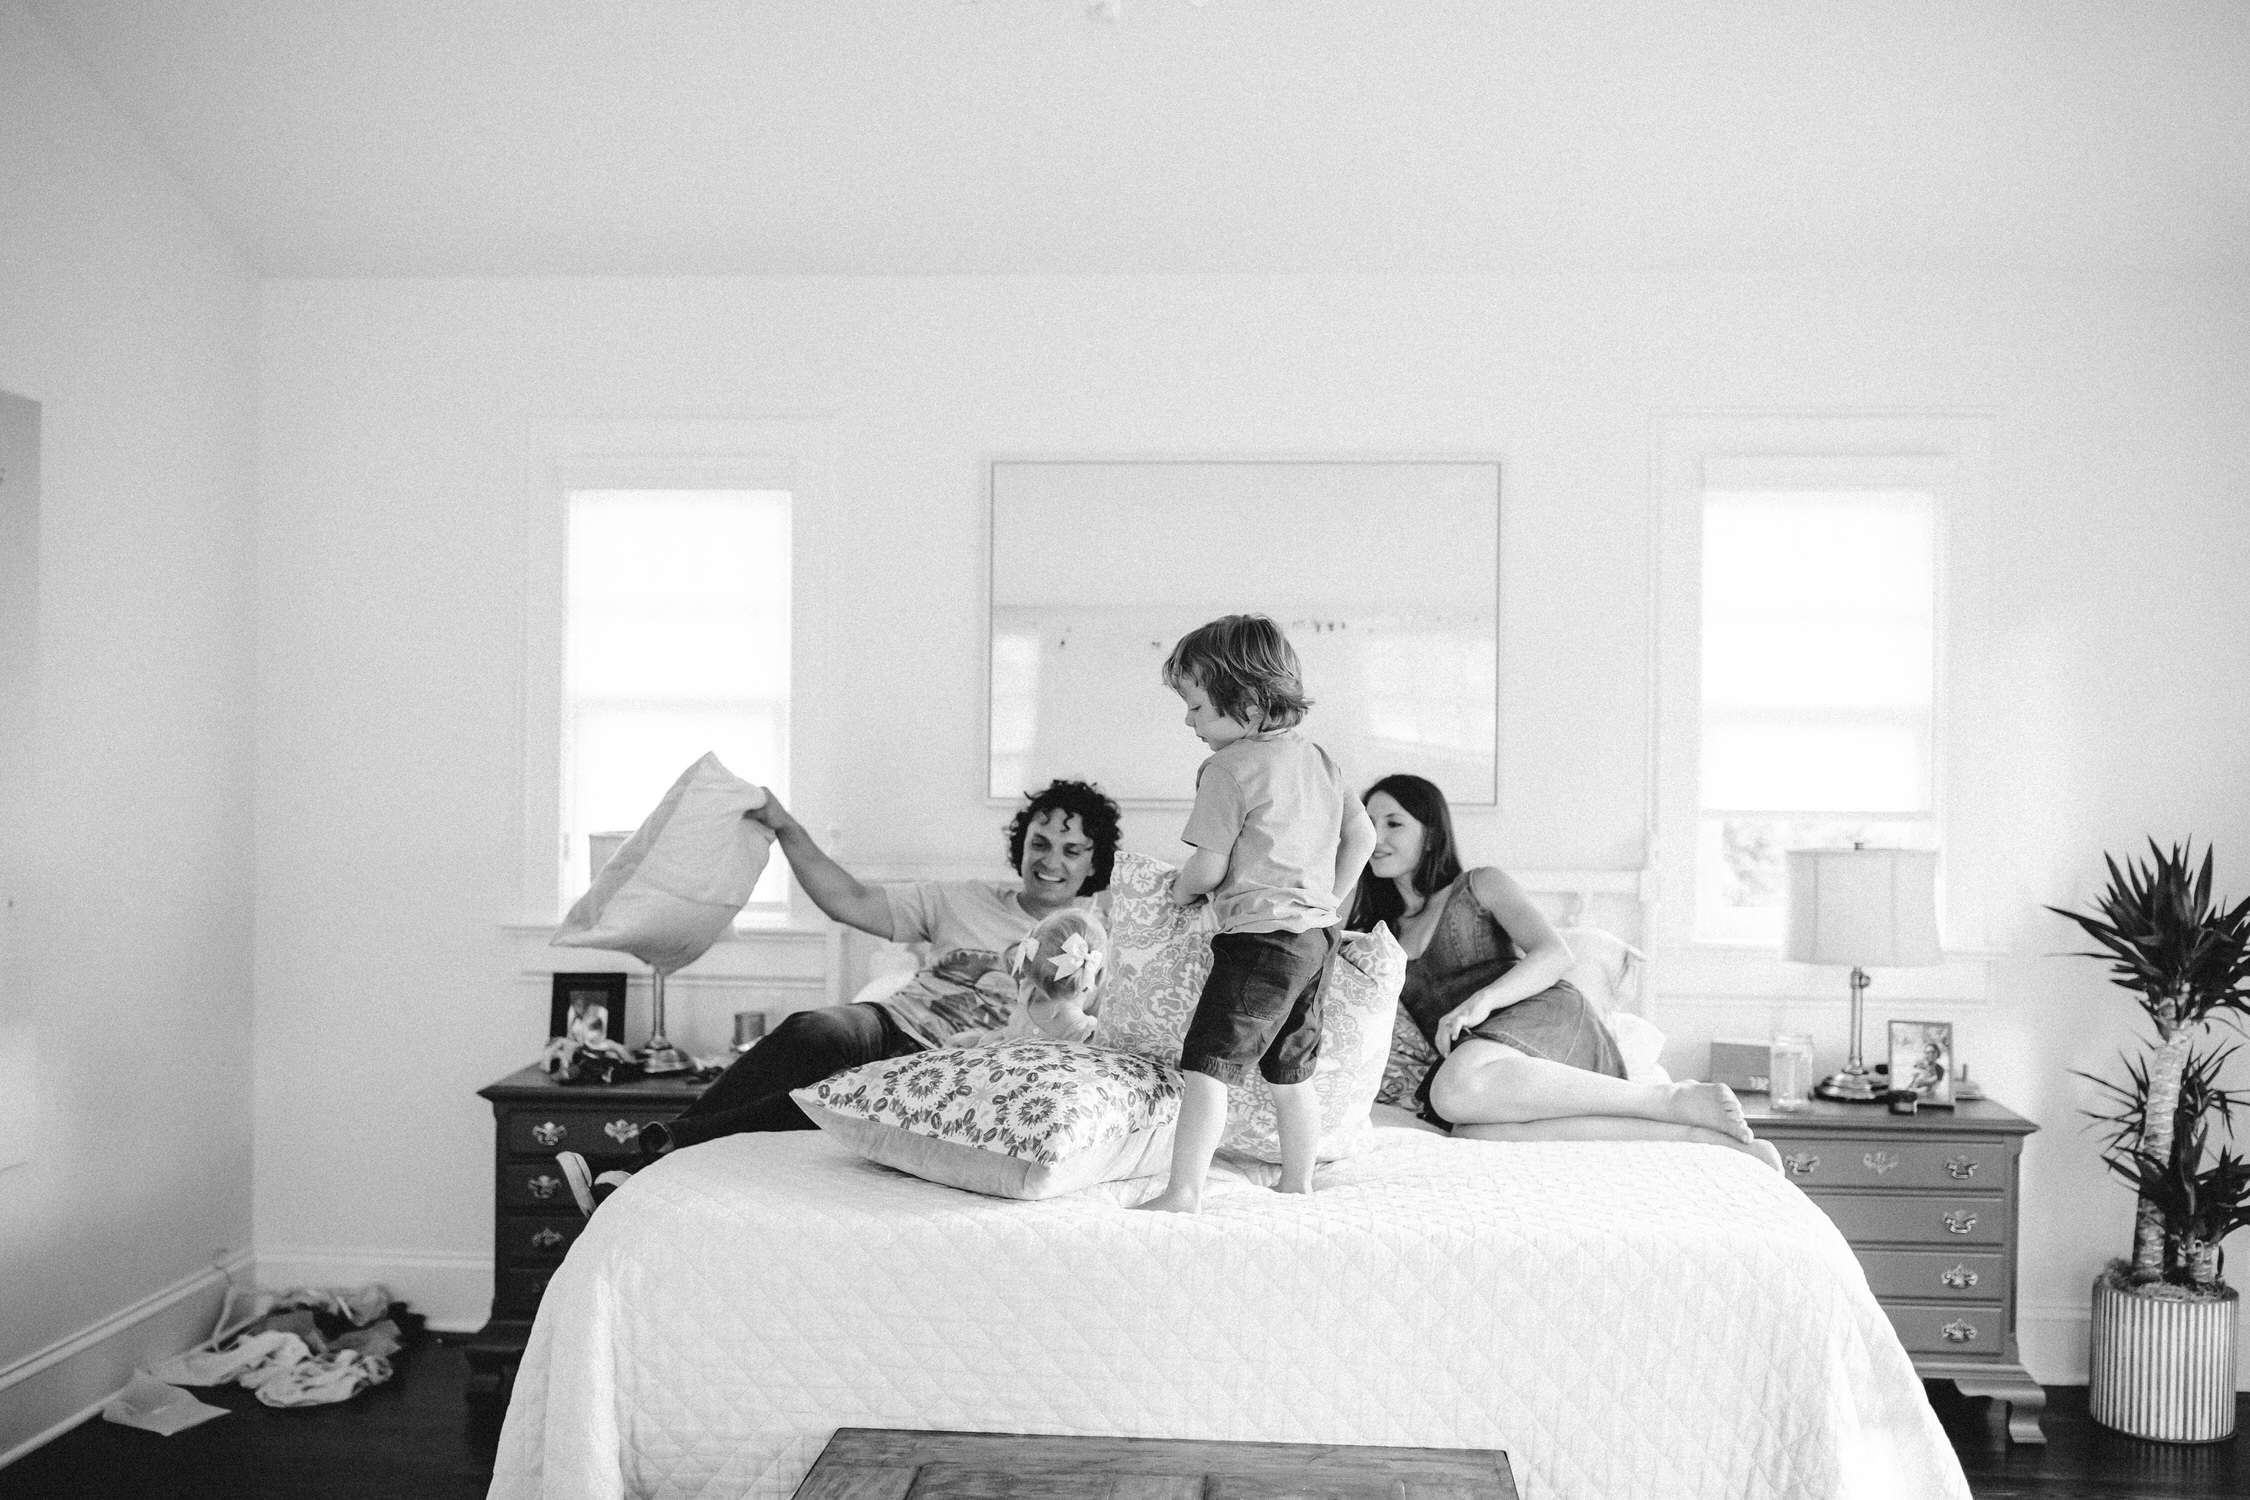 at home sessions - Document these moments before the kids out grow them. Make cookies, have pillow fights, show me what your life is like at home and I will show you how beautiful it is.